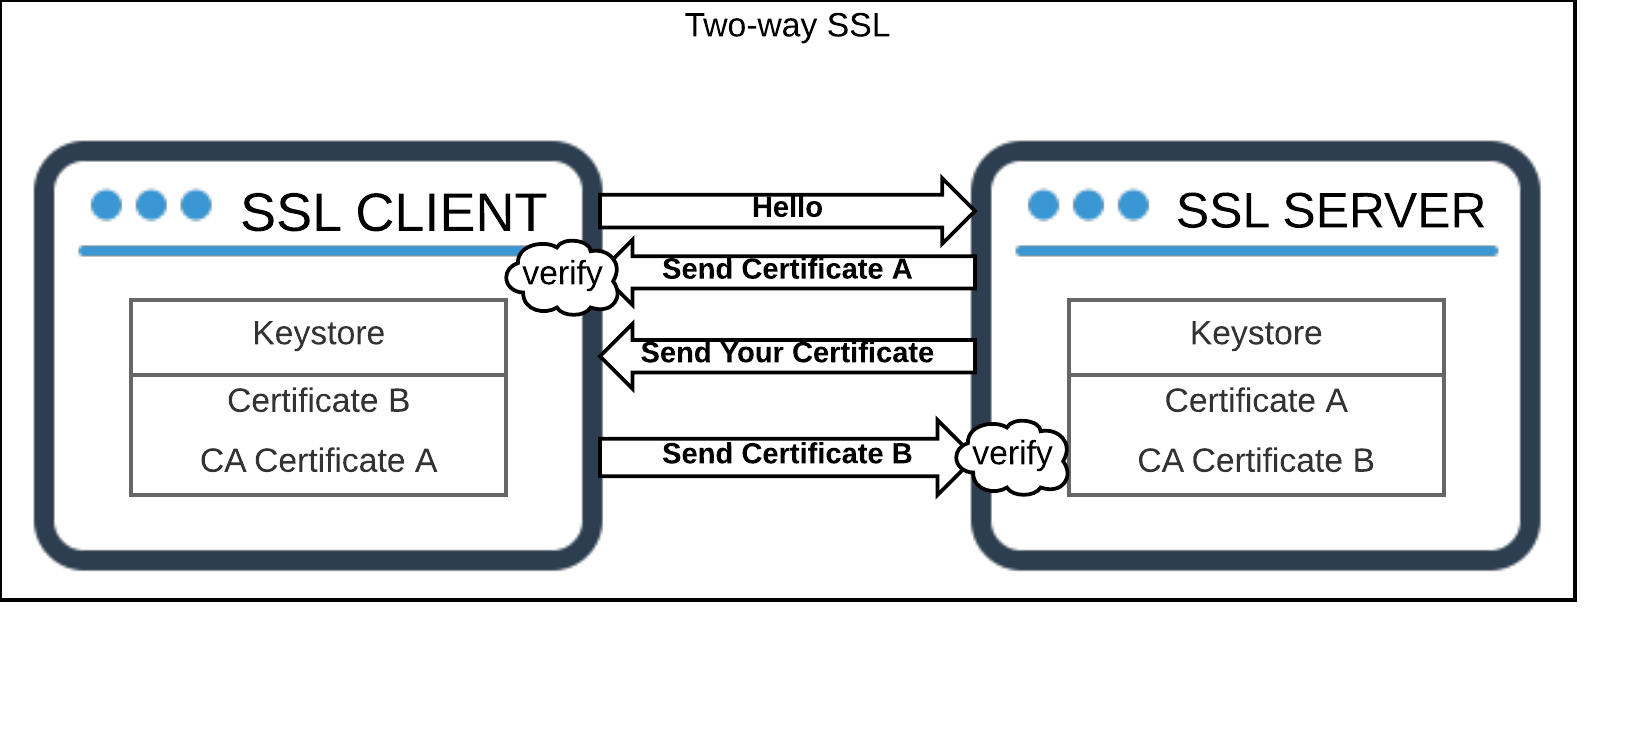 Configuring Two-way SSL on EAP 7